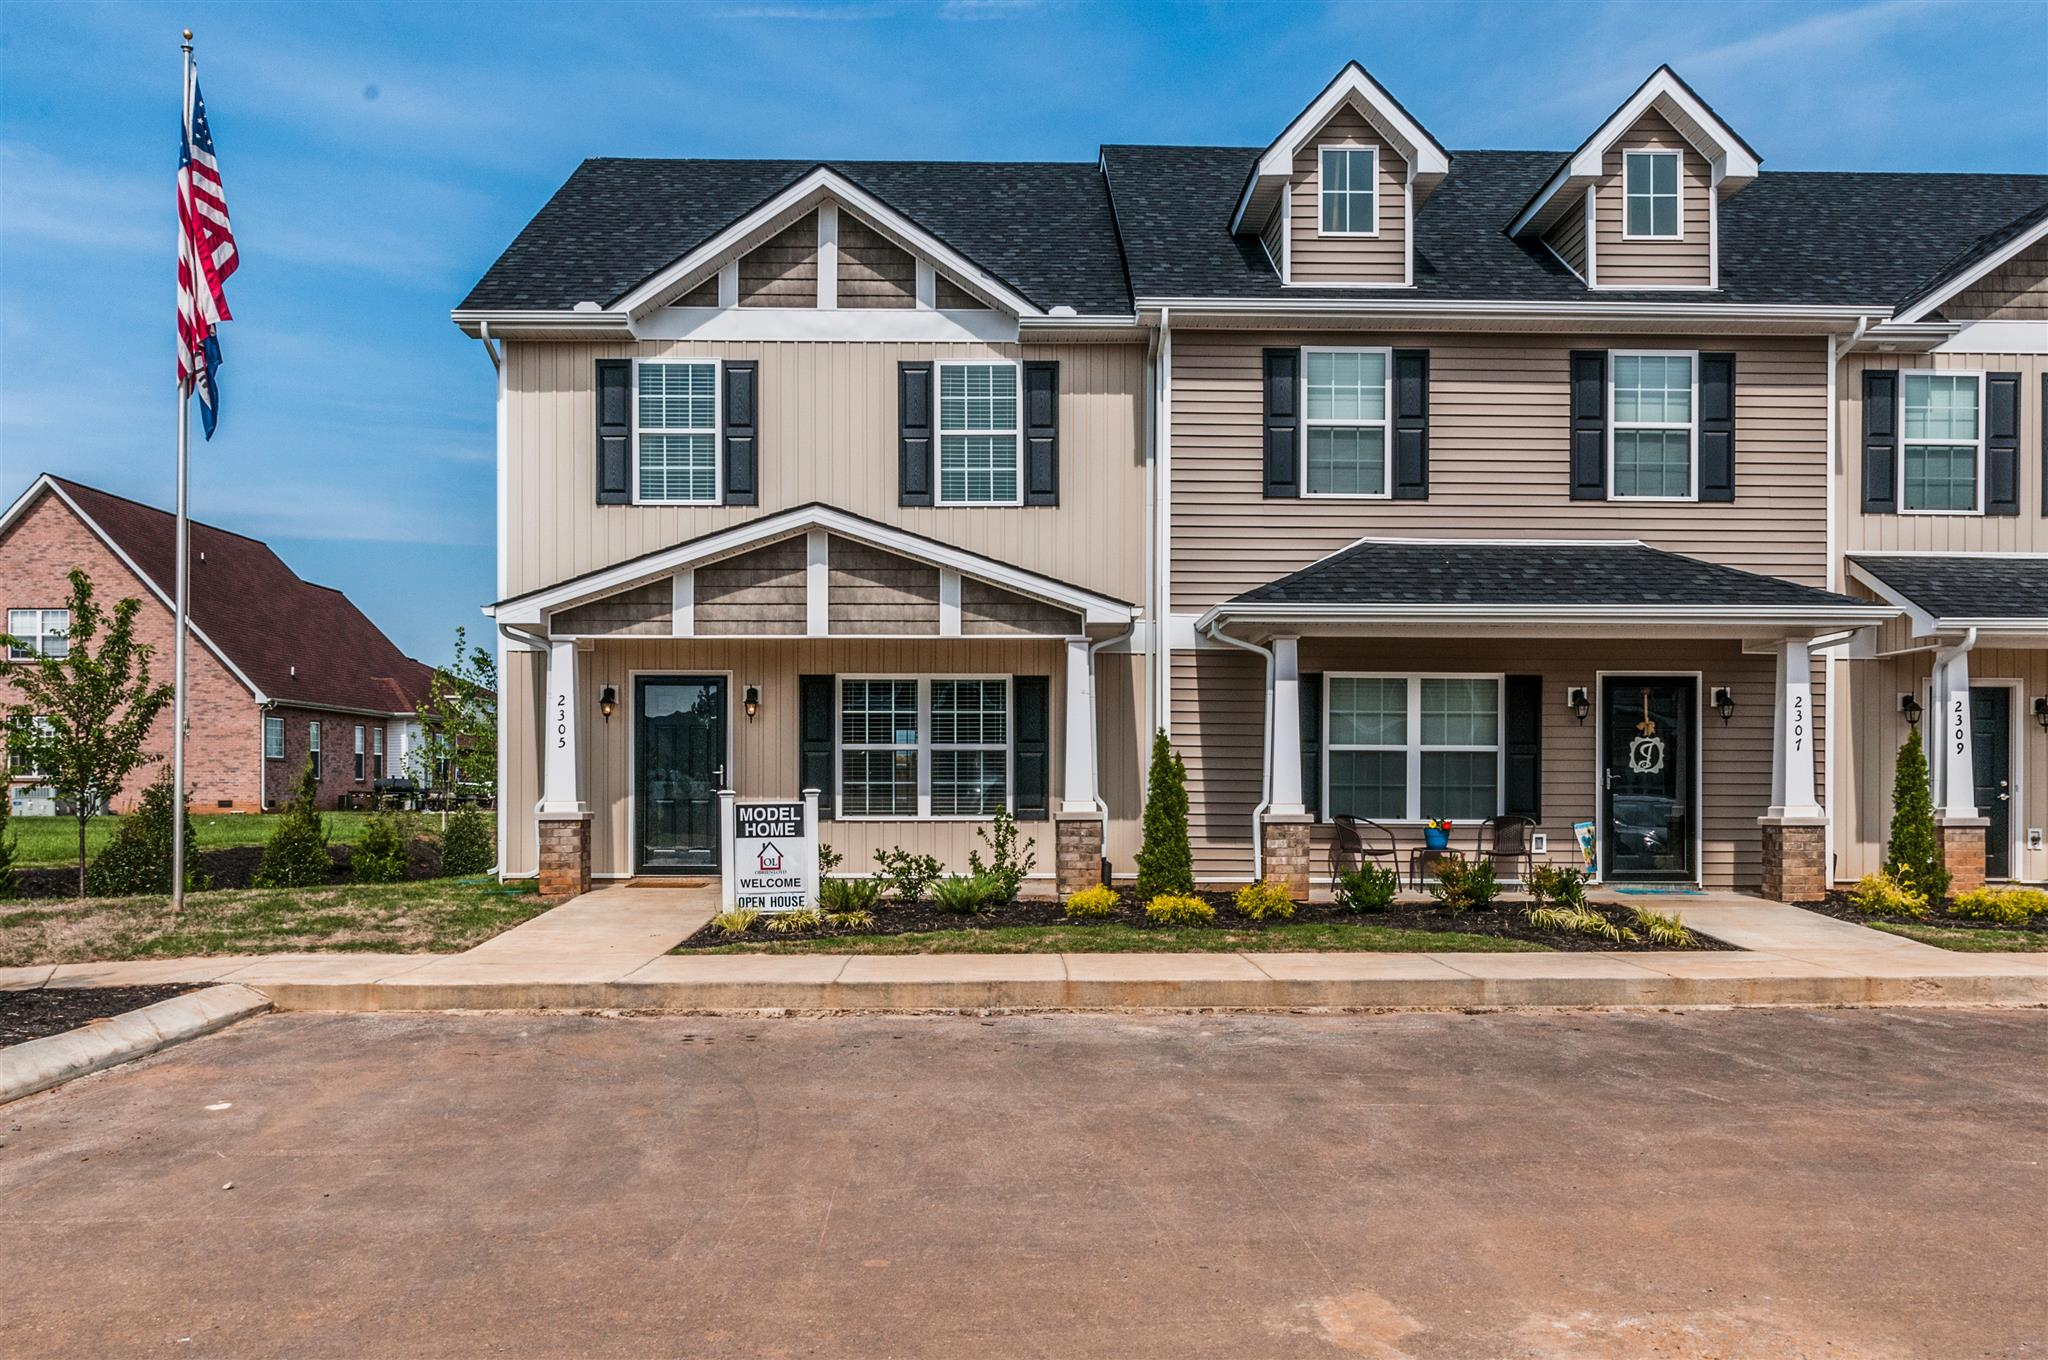 2323 New Holland Cir, Murfreesboro, TN 37128